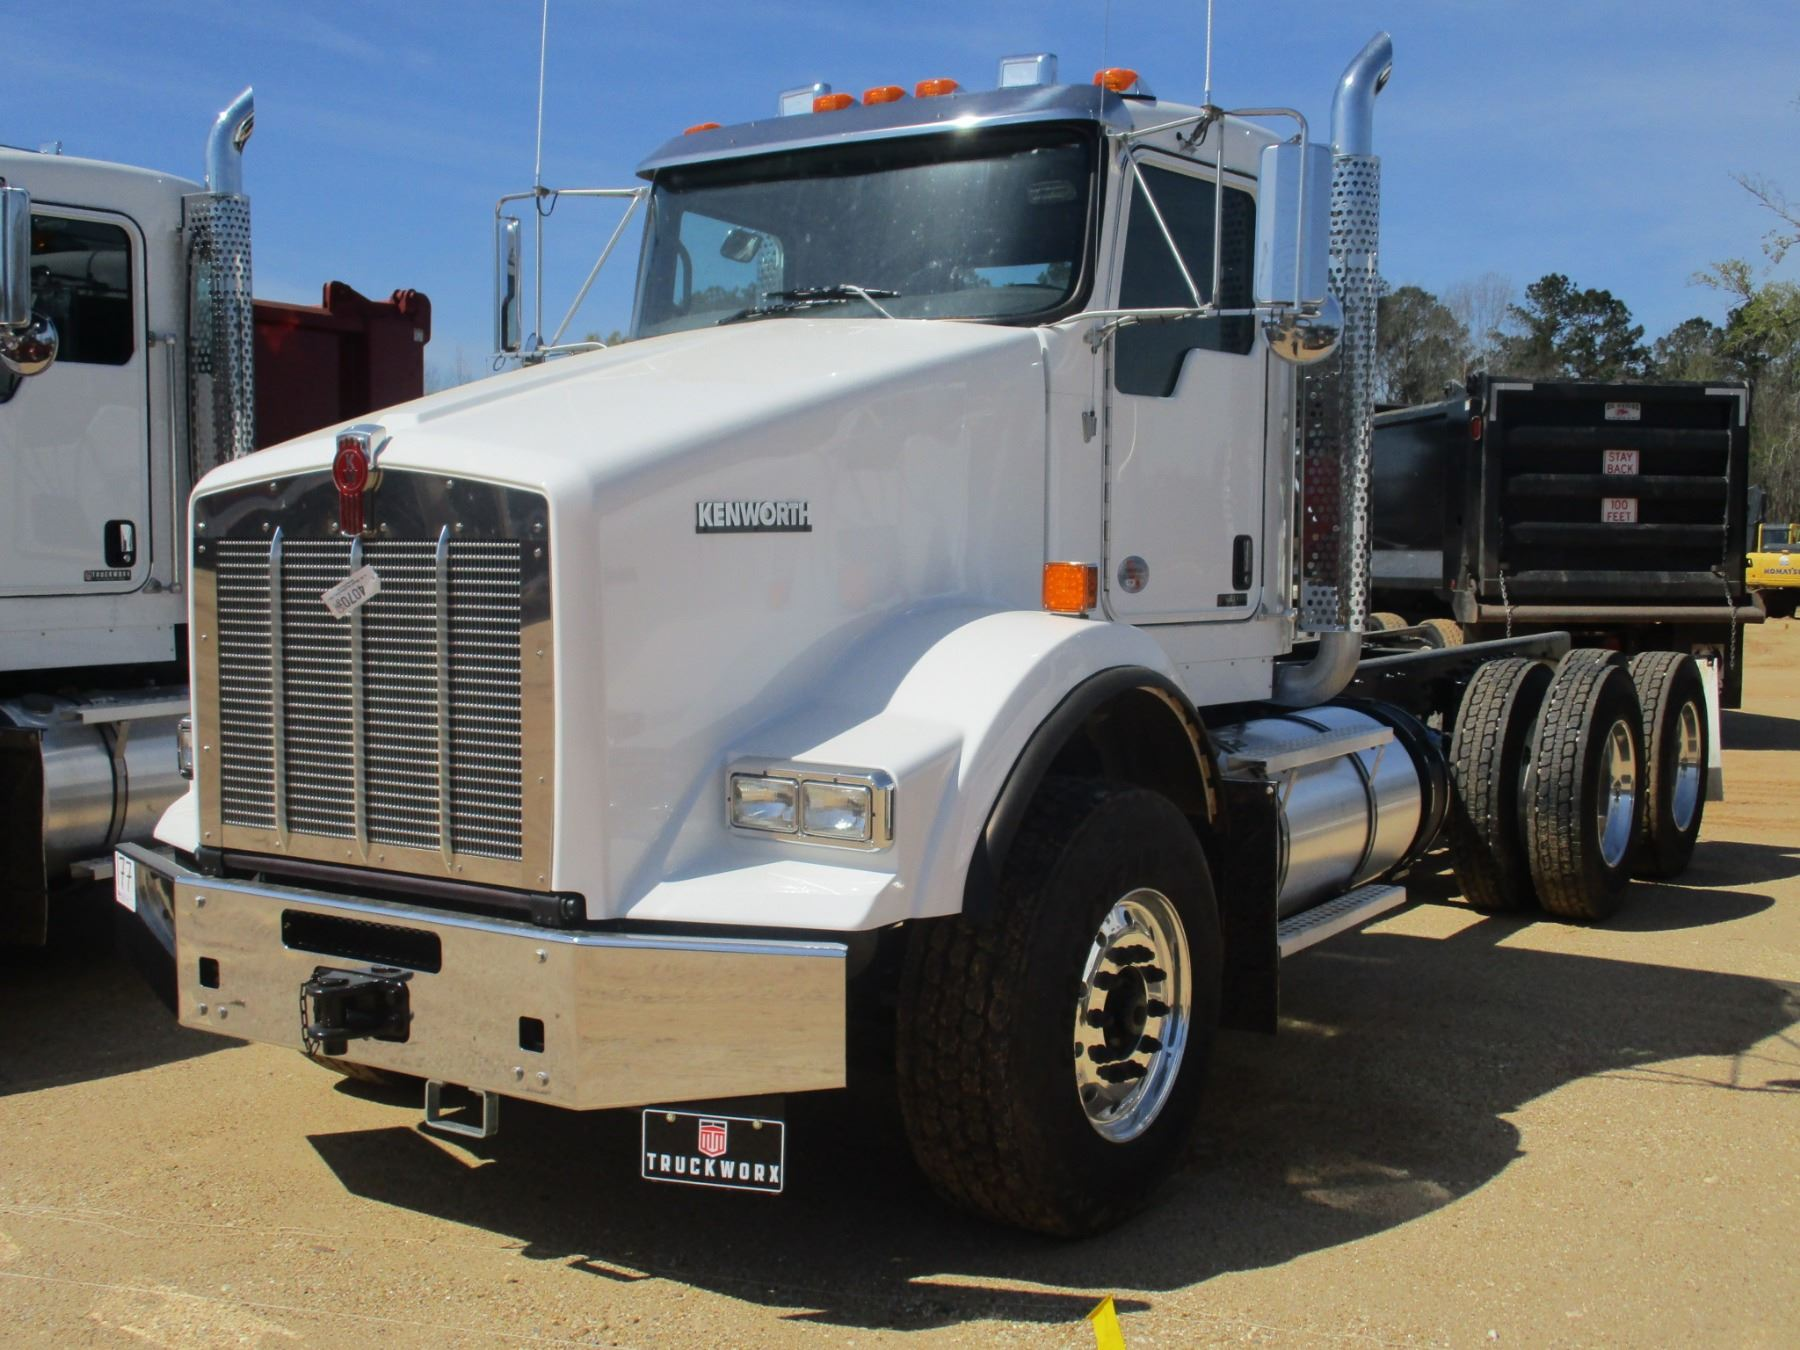 hight resolution of image 1 2018 kenworth t800 cab chassis vin sn 1nkdl40x6jj205443